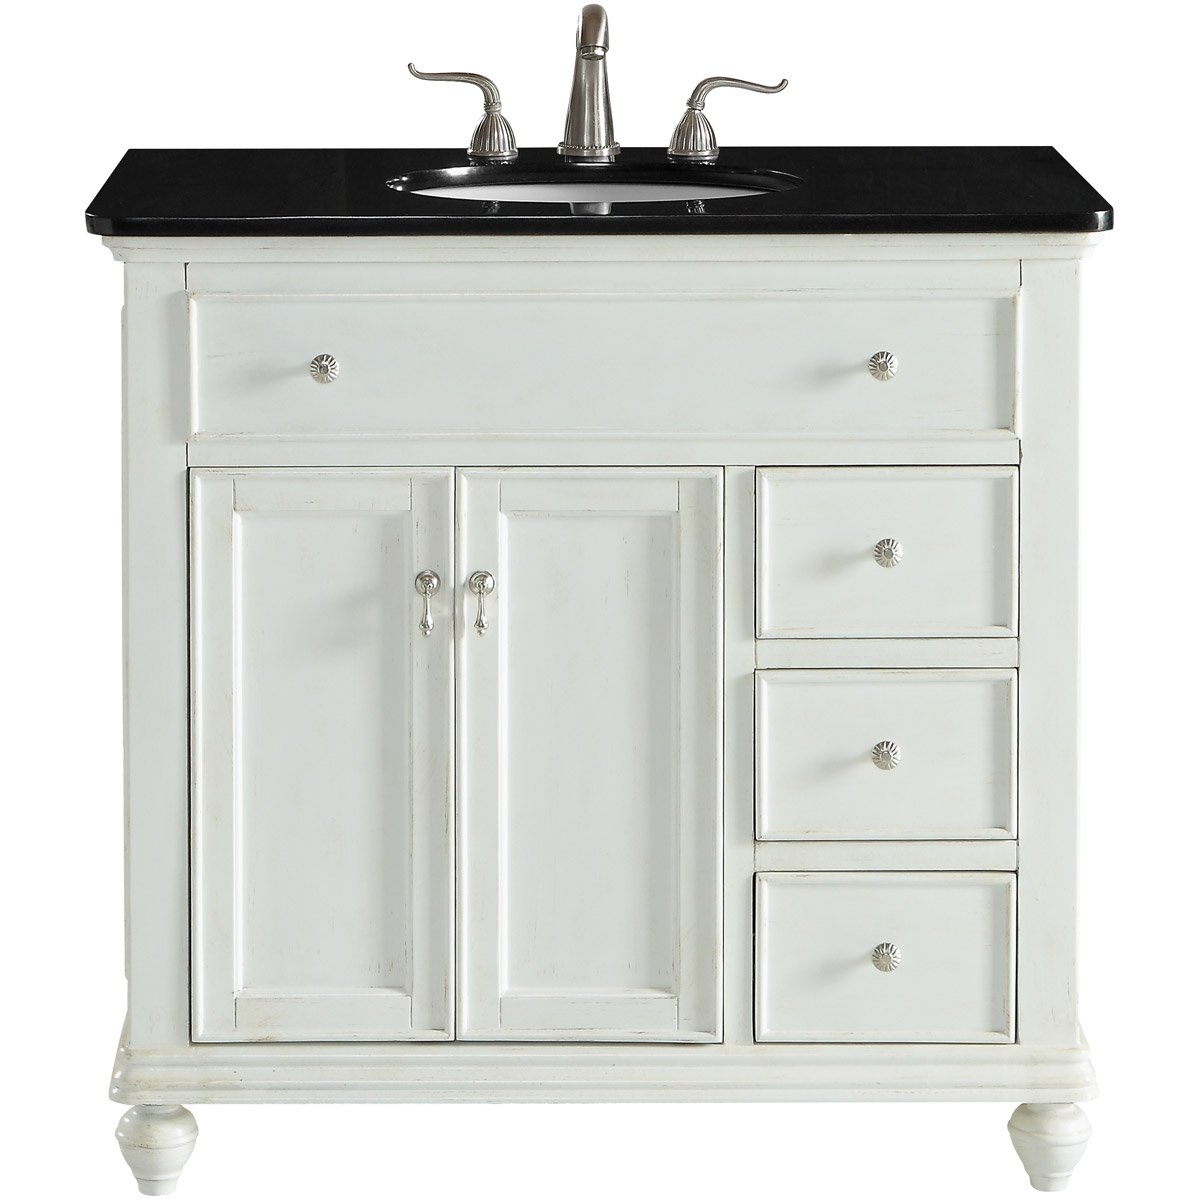 Otto 36 X 35 3 Drawer 2 Door Vanity Cabinet - Antique White Finish (Vf12336Aw) Vanity